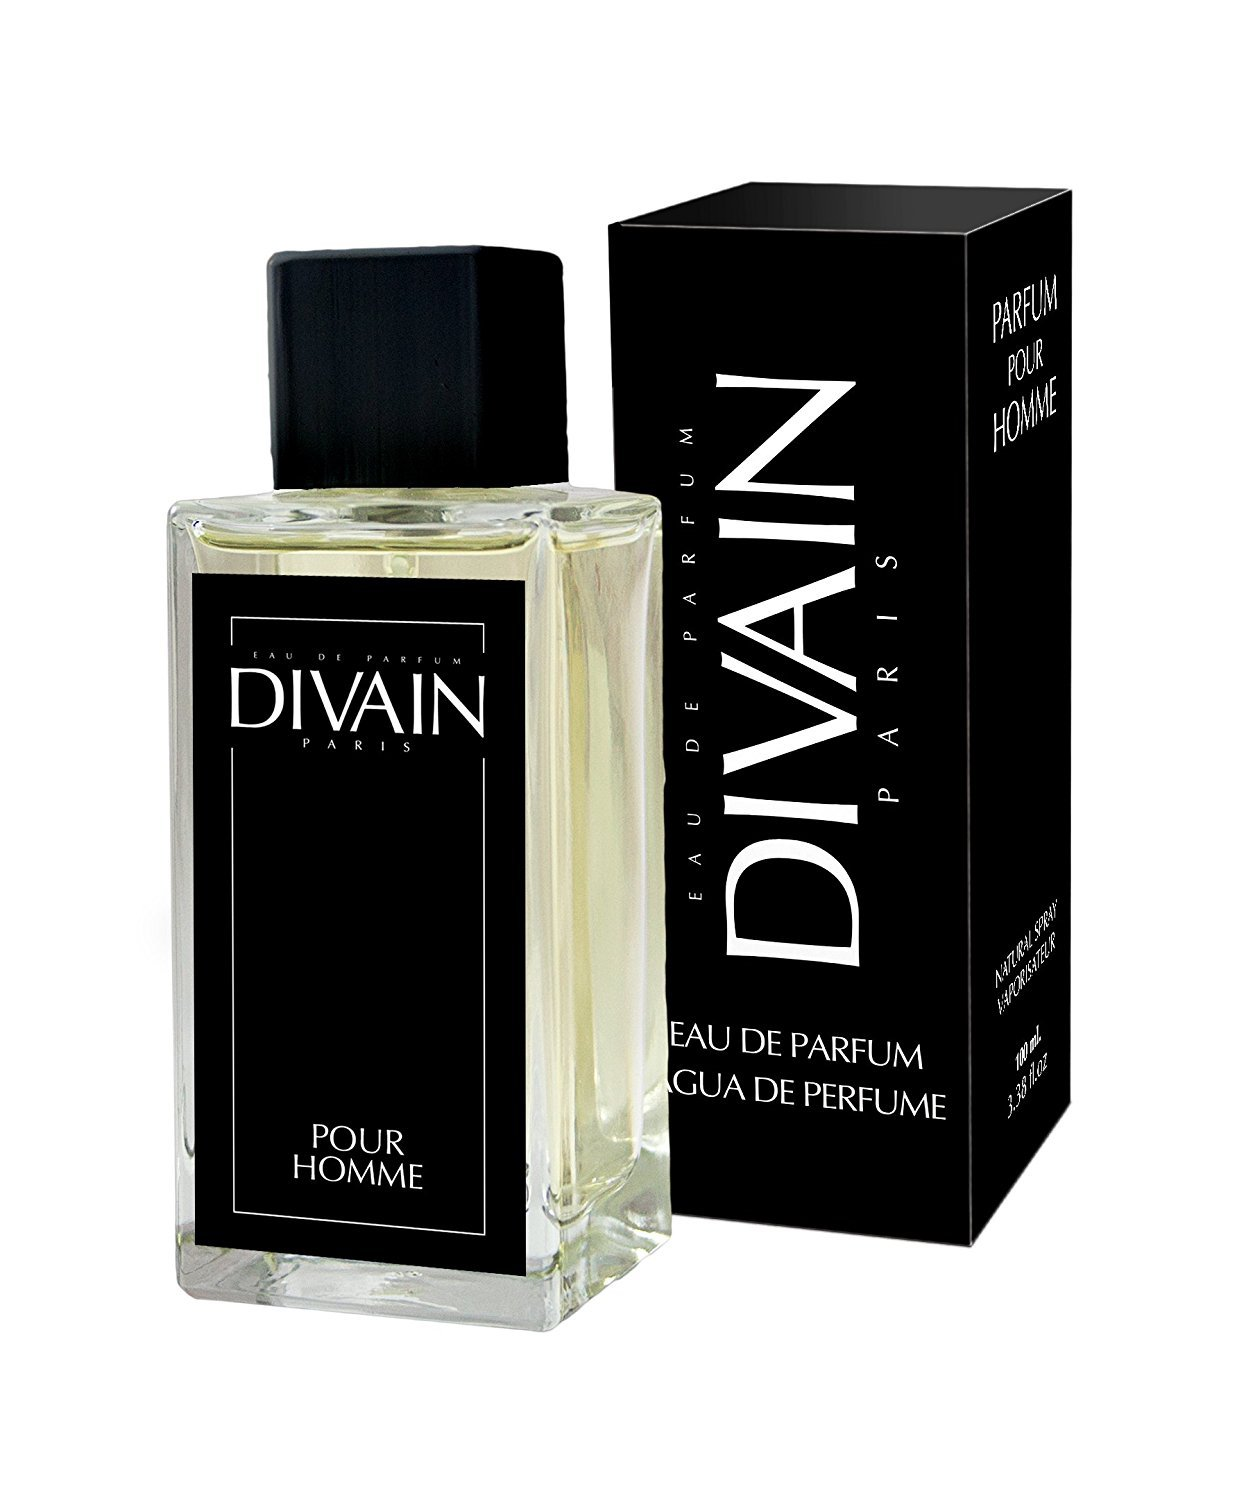 DIVAIN-027, Similar to Acqua Di Gio from Armani, Eau de parfum for men, Spray 100 ml Tu perfume favorito SL